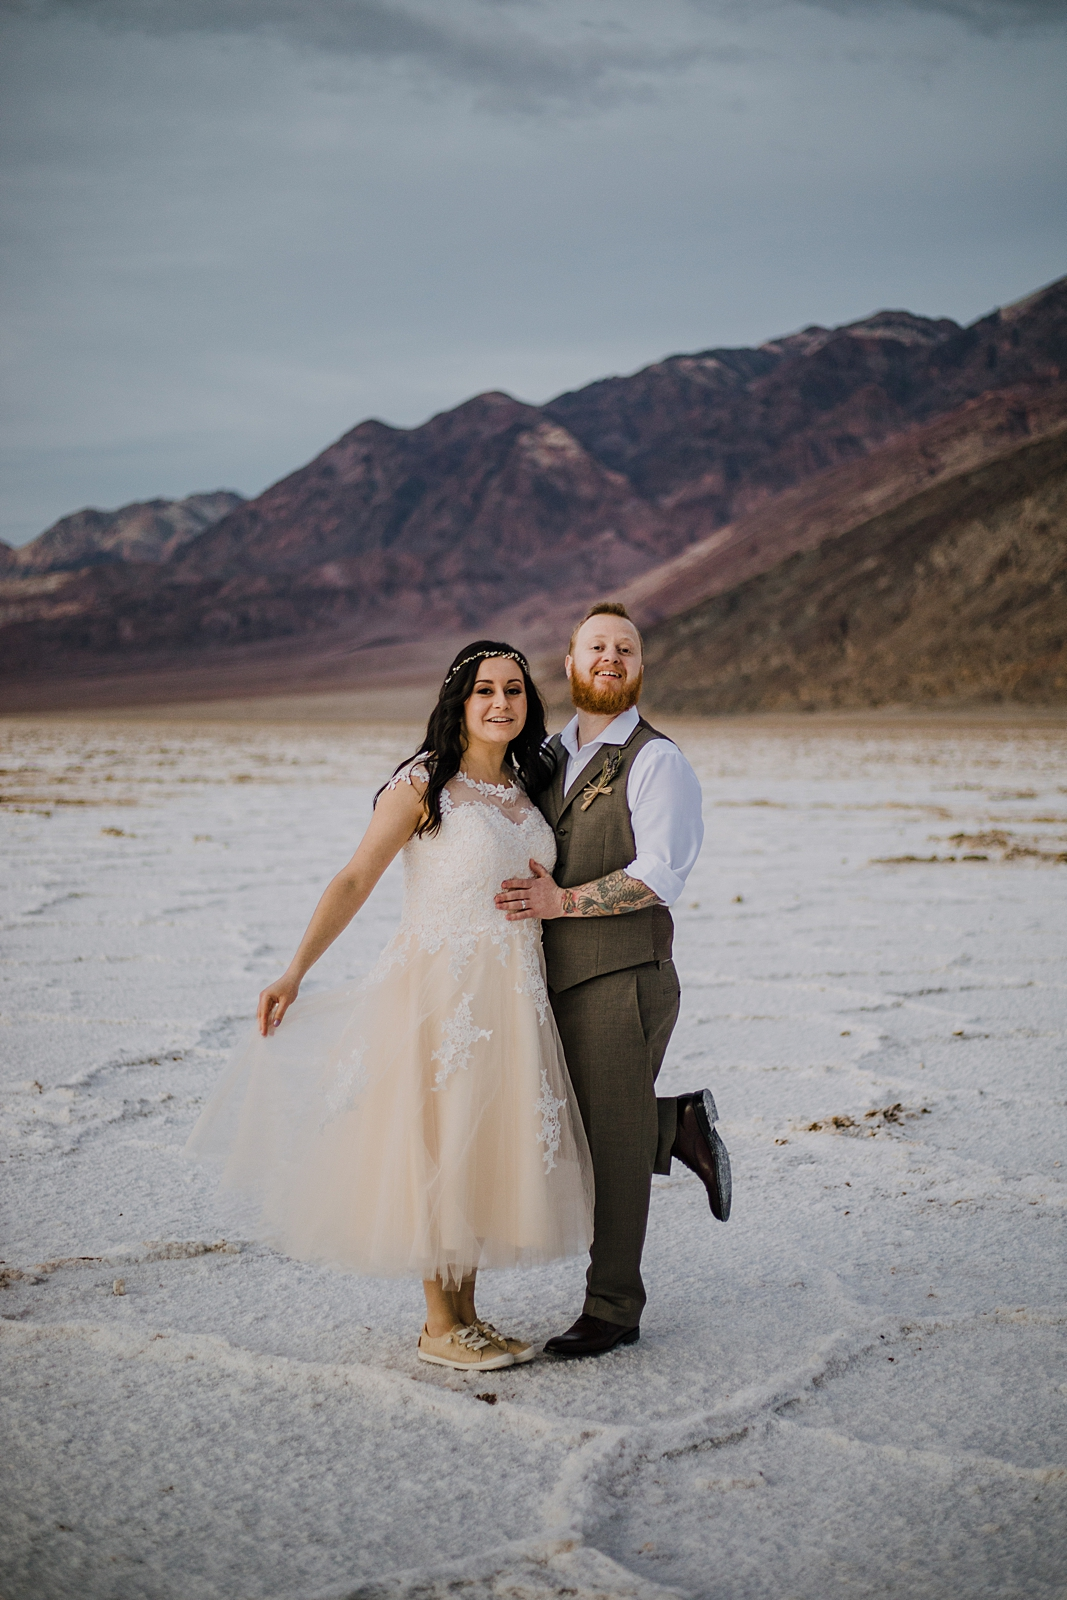 bridals at the salt flats, death valley national park elopement, elope in death valley, badwater basin elopement, hiking in death valley national park, sunset at badwater basin